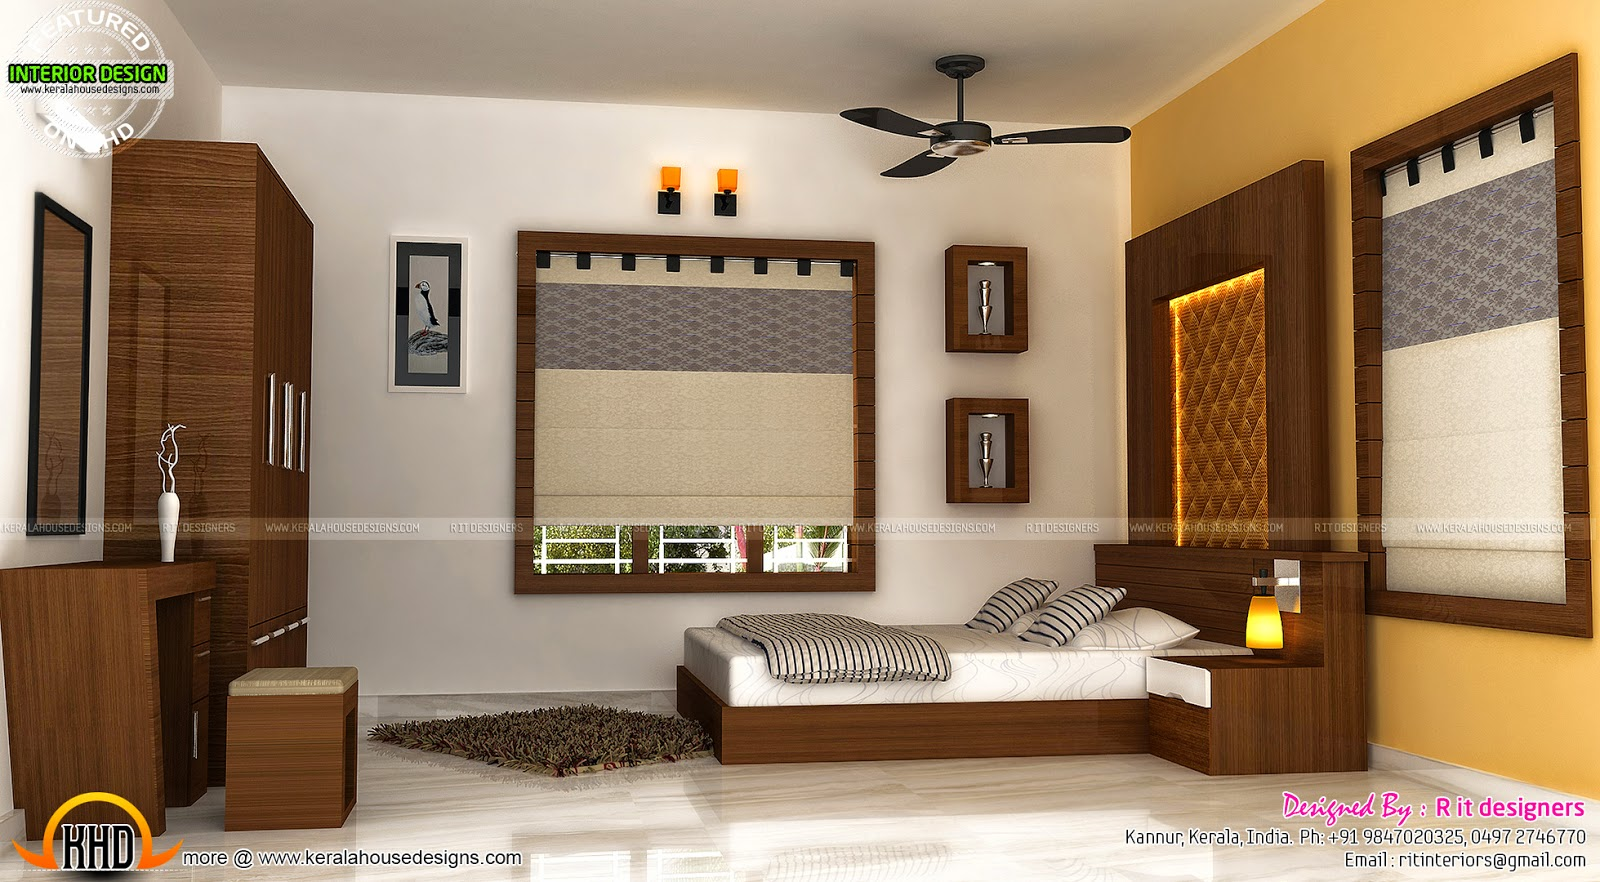 Staircase bedroom dining interiors kerala home design for Interior designs for home